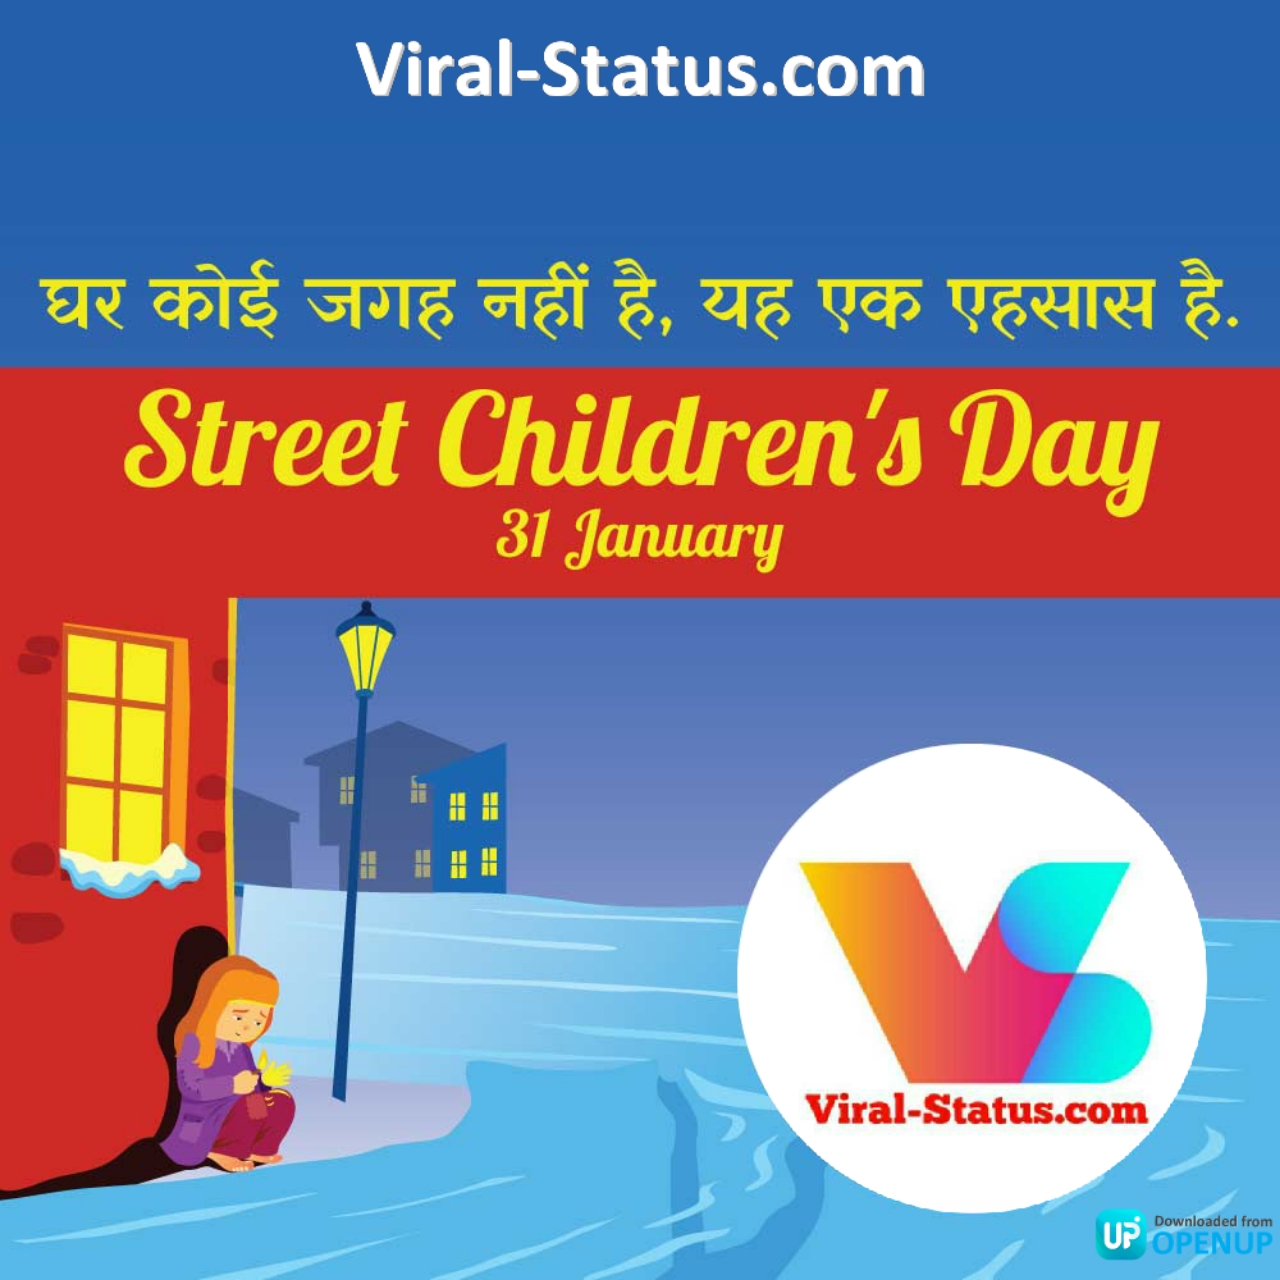 street children's day in india